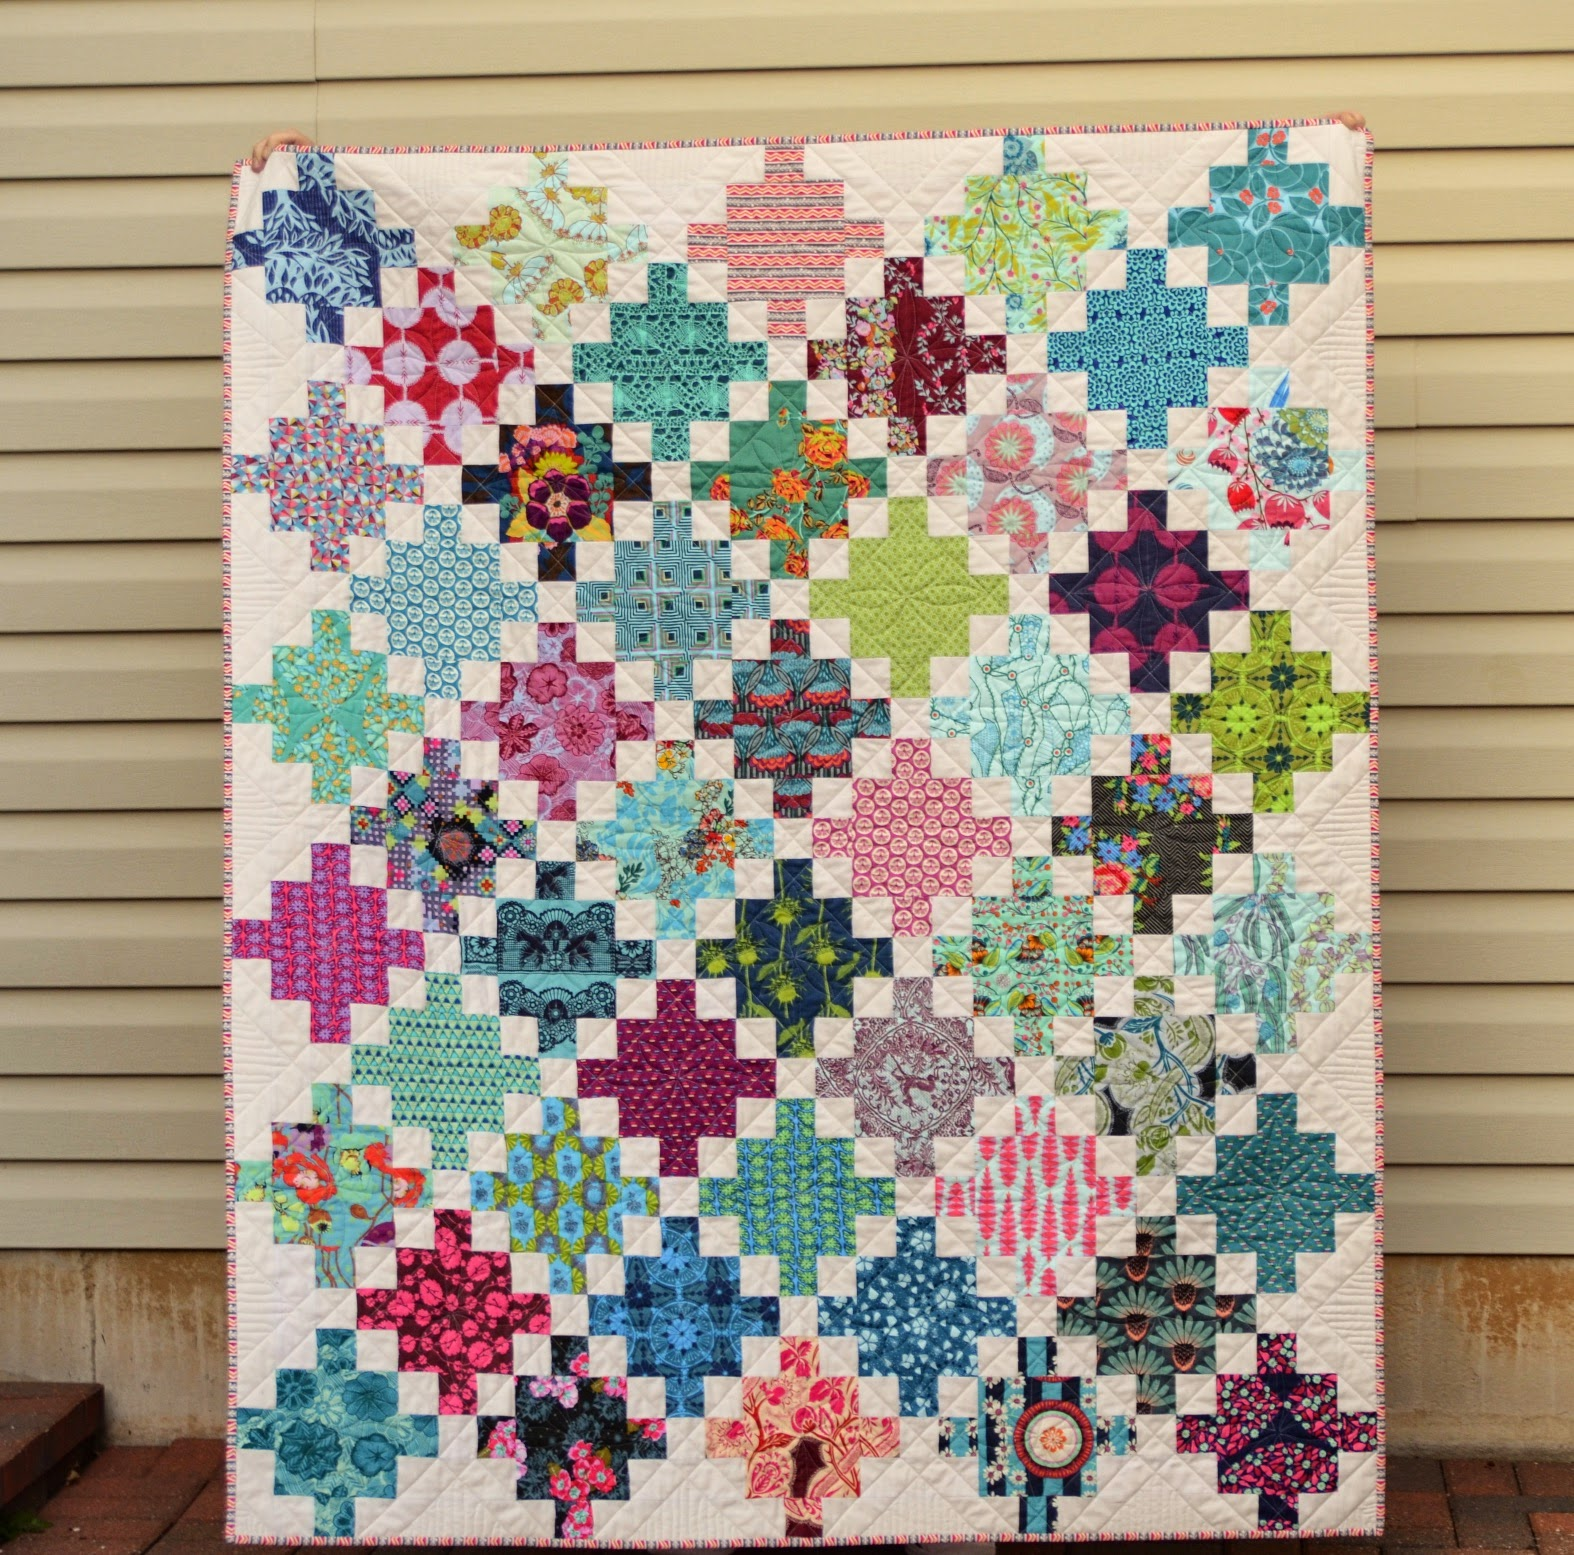 Quilt Patterns With 6 Inch Squares : Hyacinth Quilt Designs: An Irish Chainish Quilt?